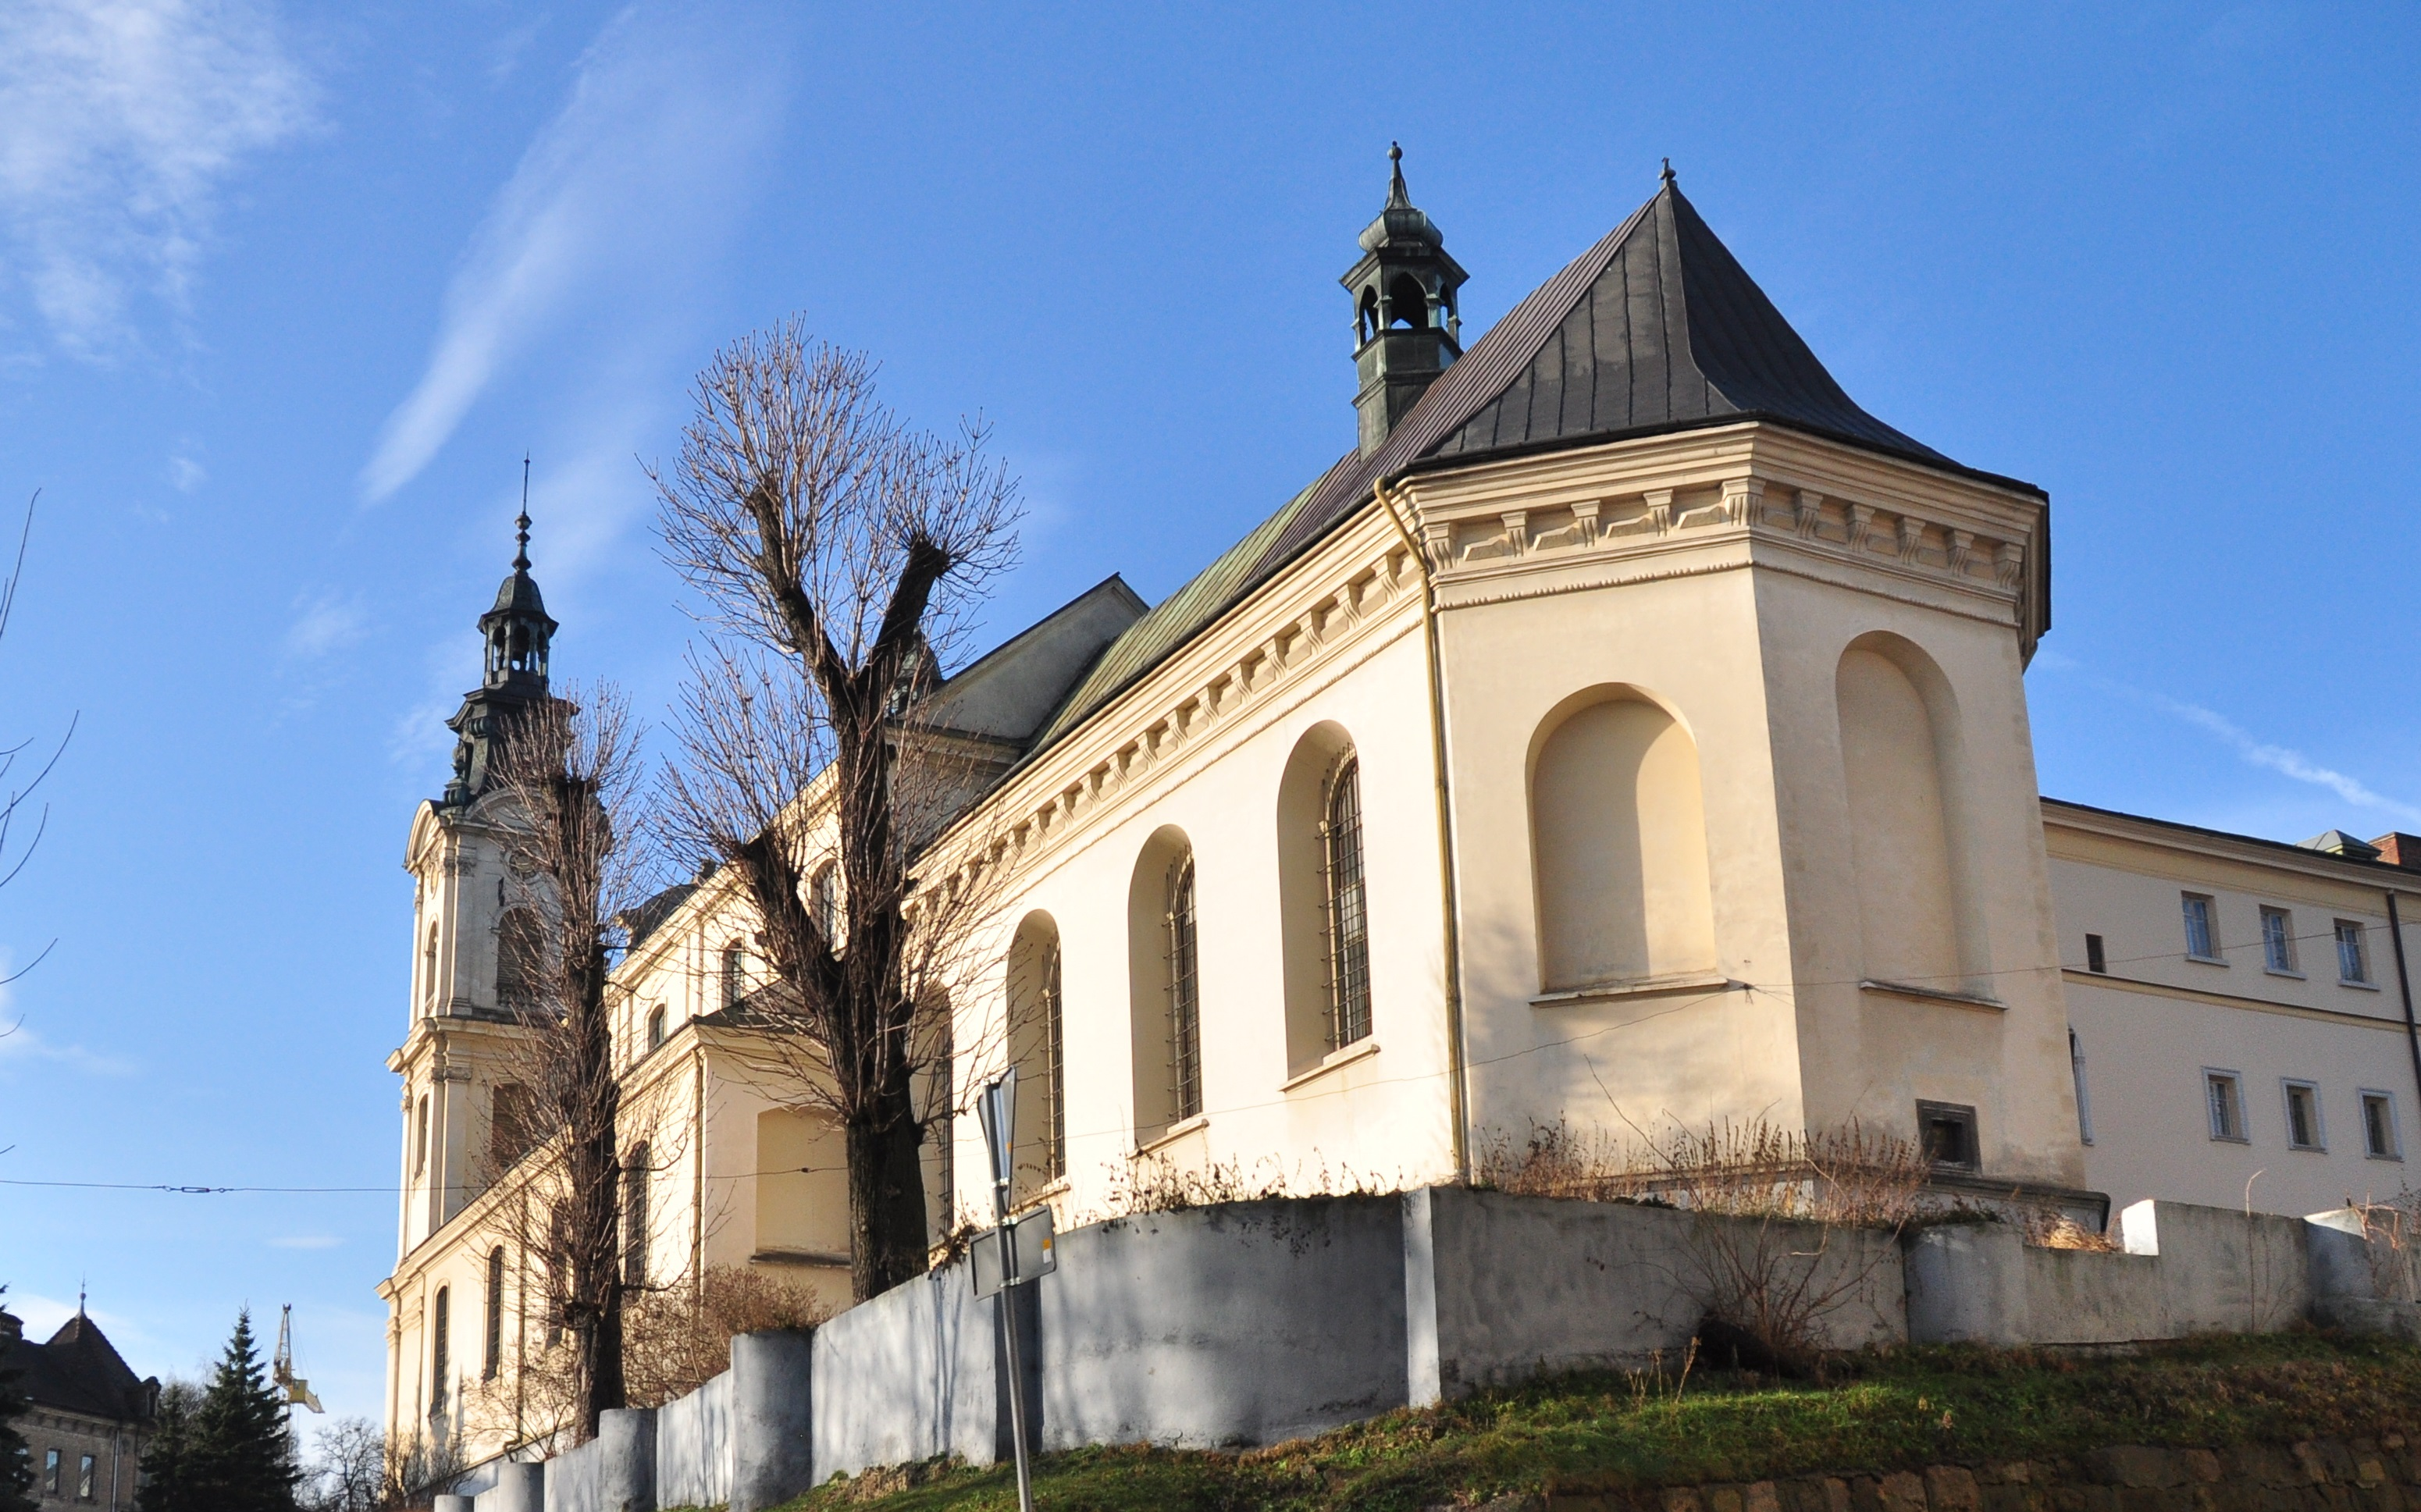 The Roman Catholic church of St. Mary Magdalene is located West of the Old Town of Lviv.